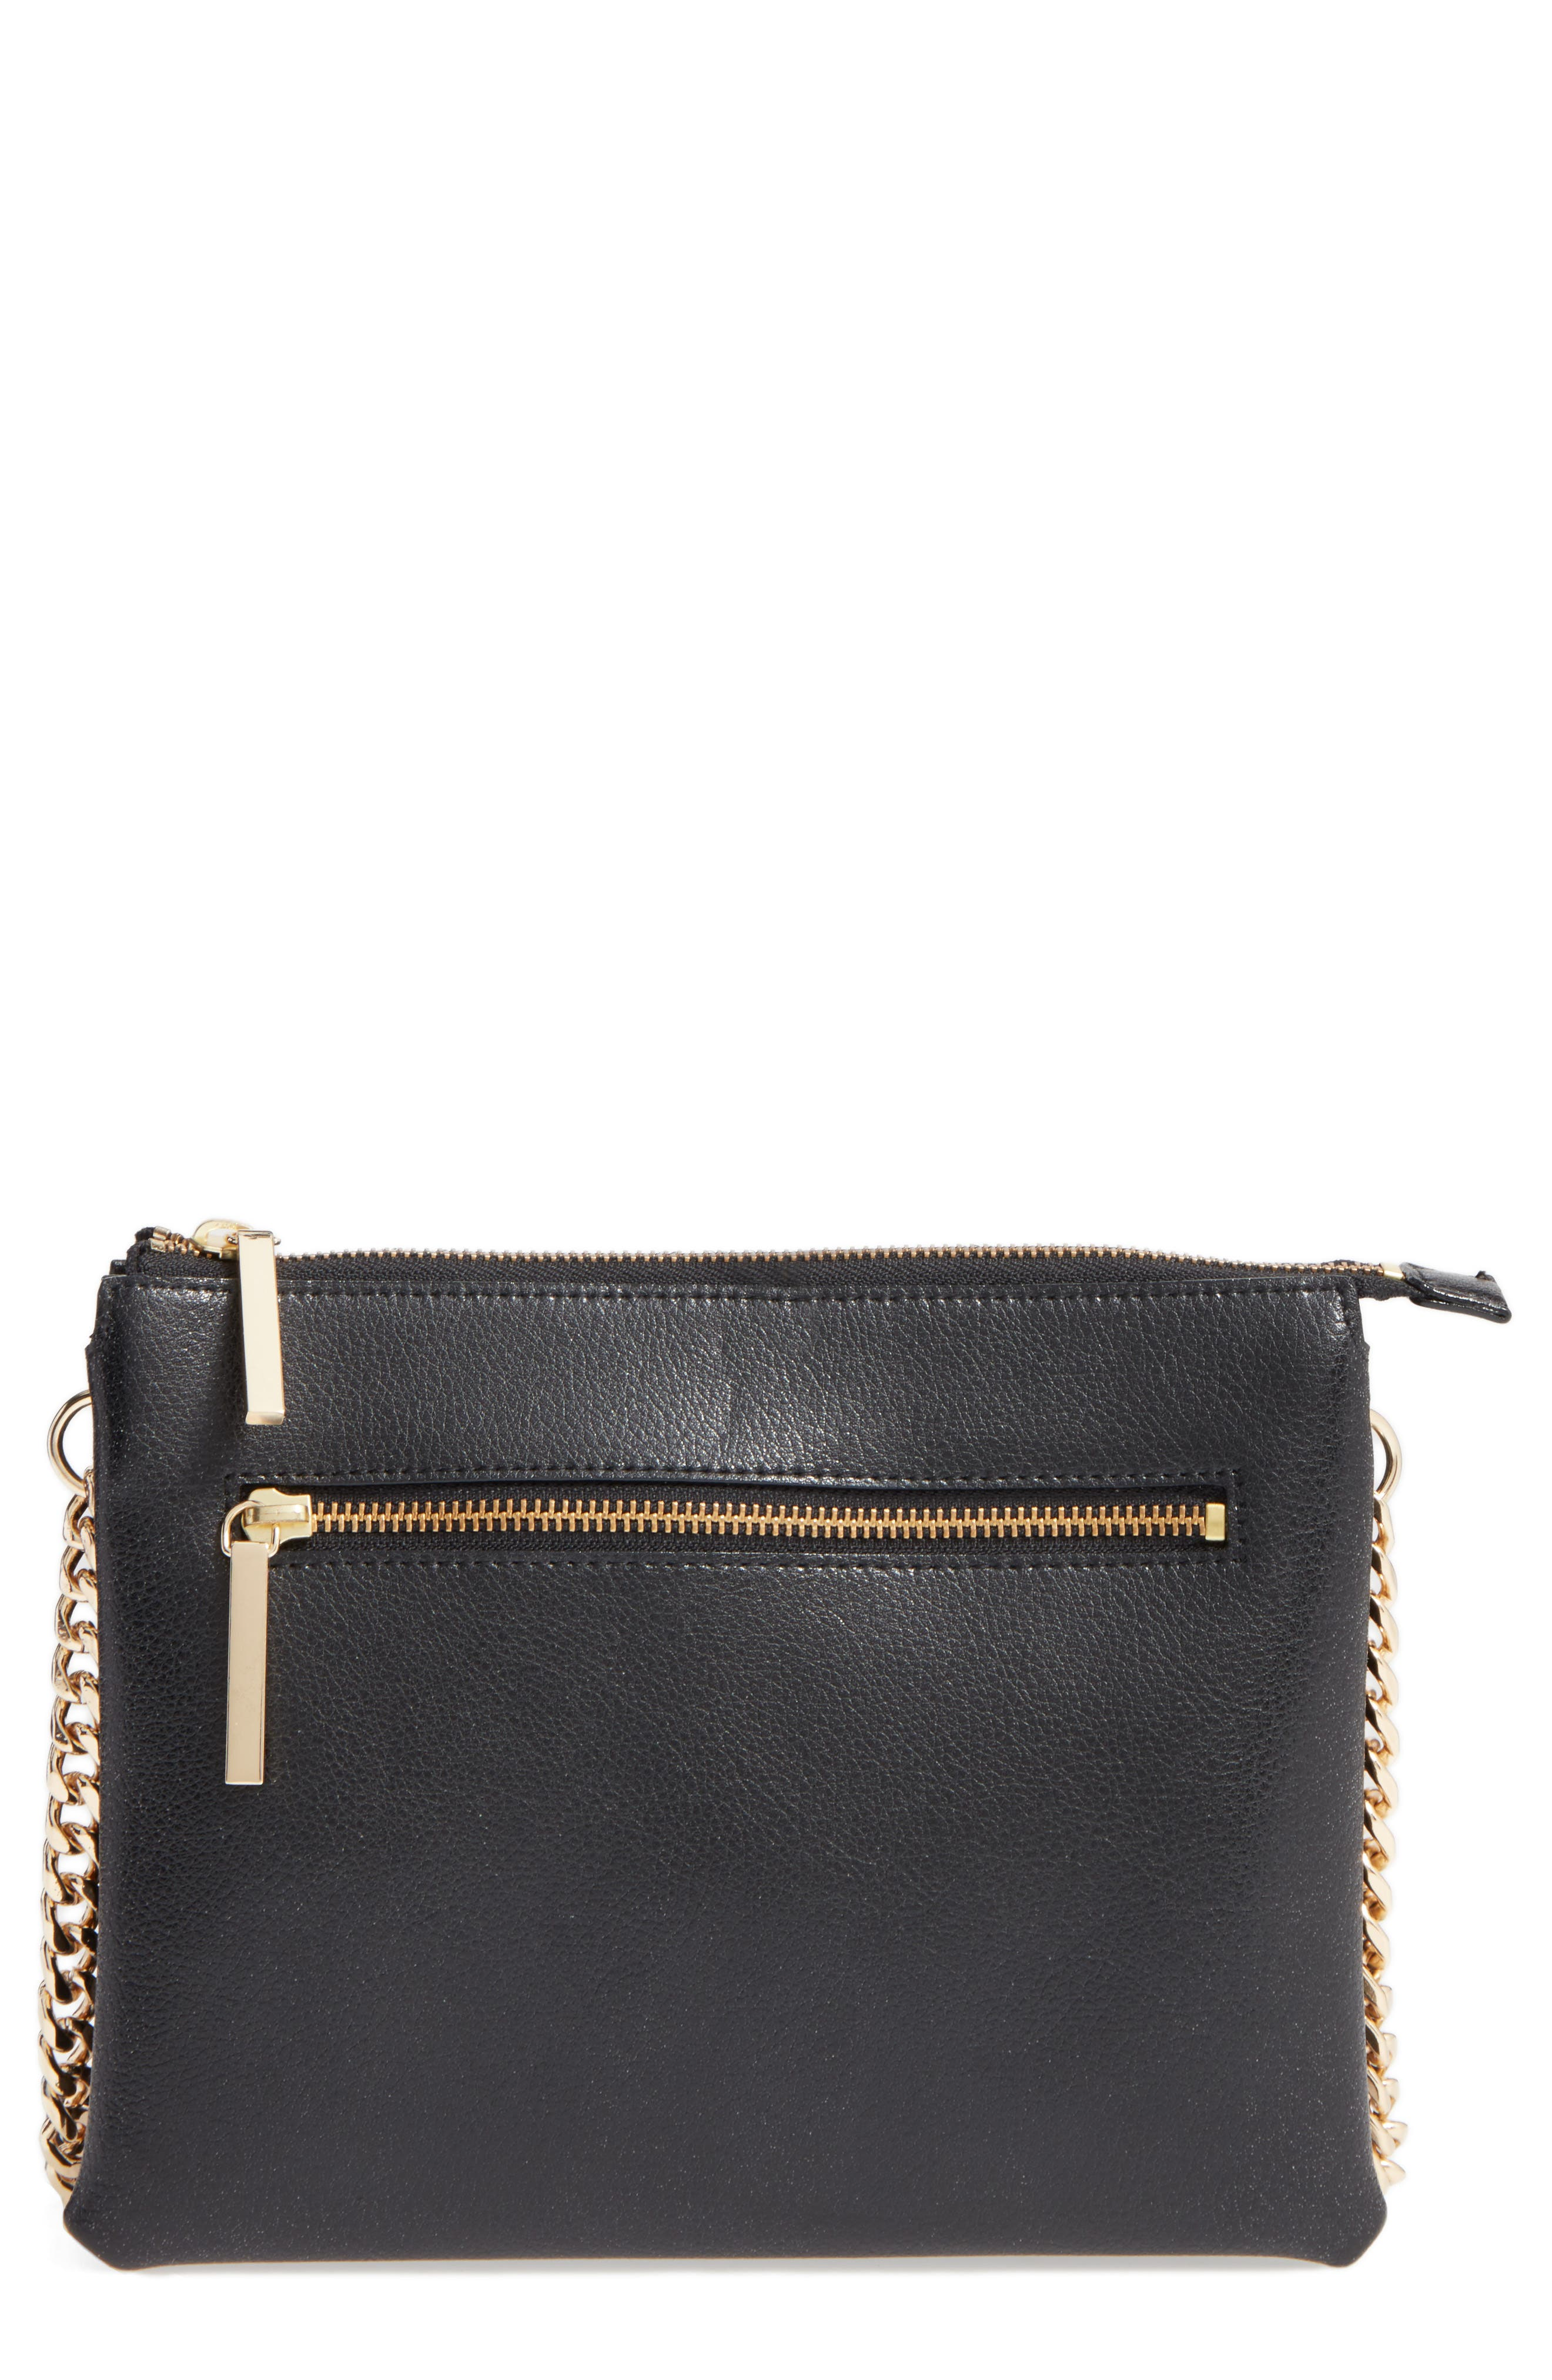 Leather Crossbody Bag, Main, color, 001